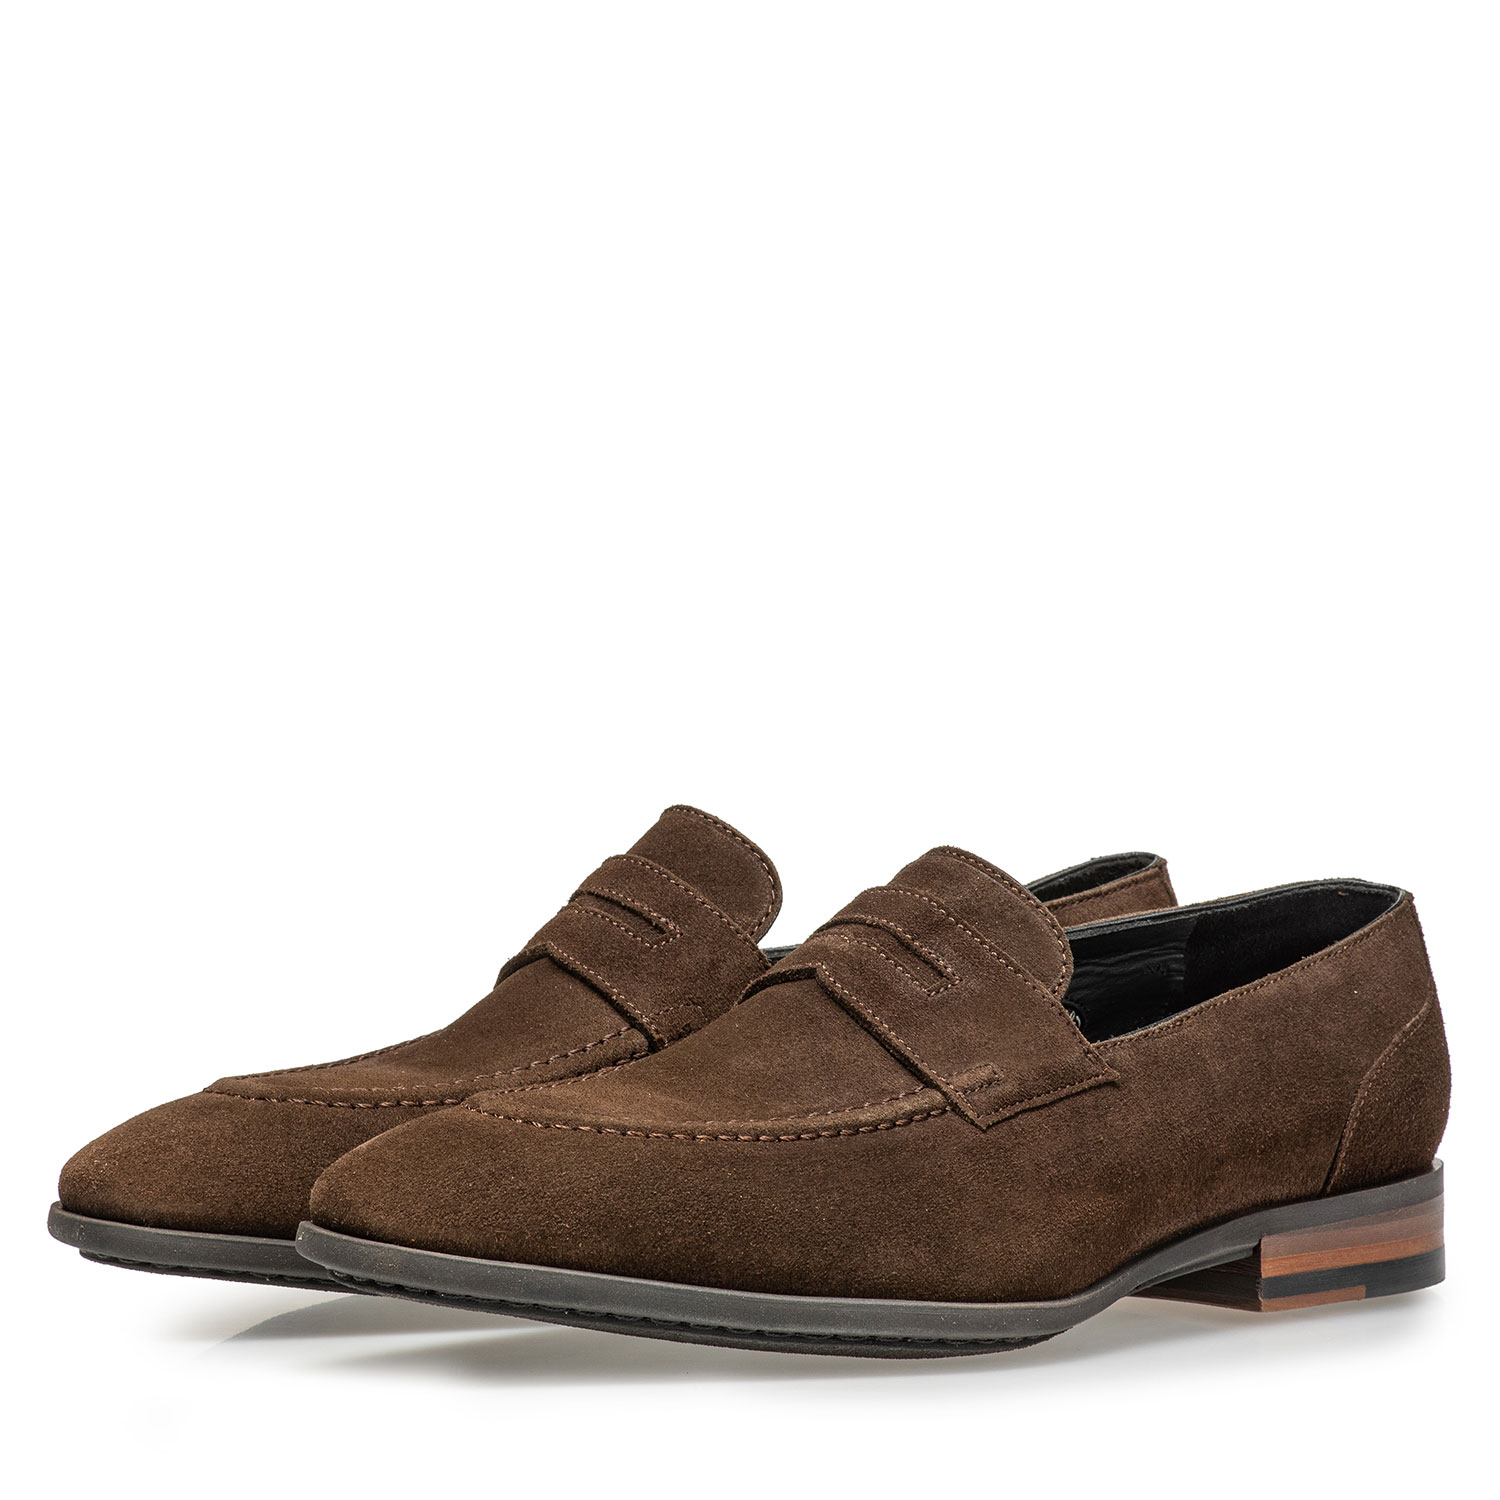 11129/02 - Dark brown suede leather loafer